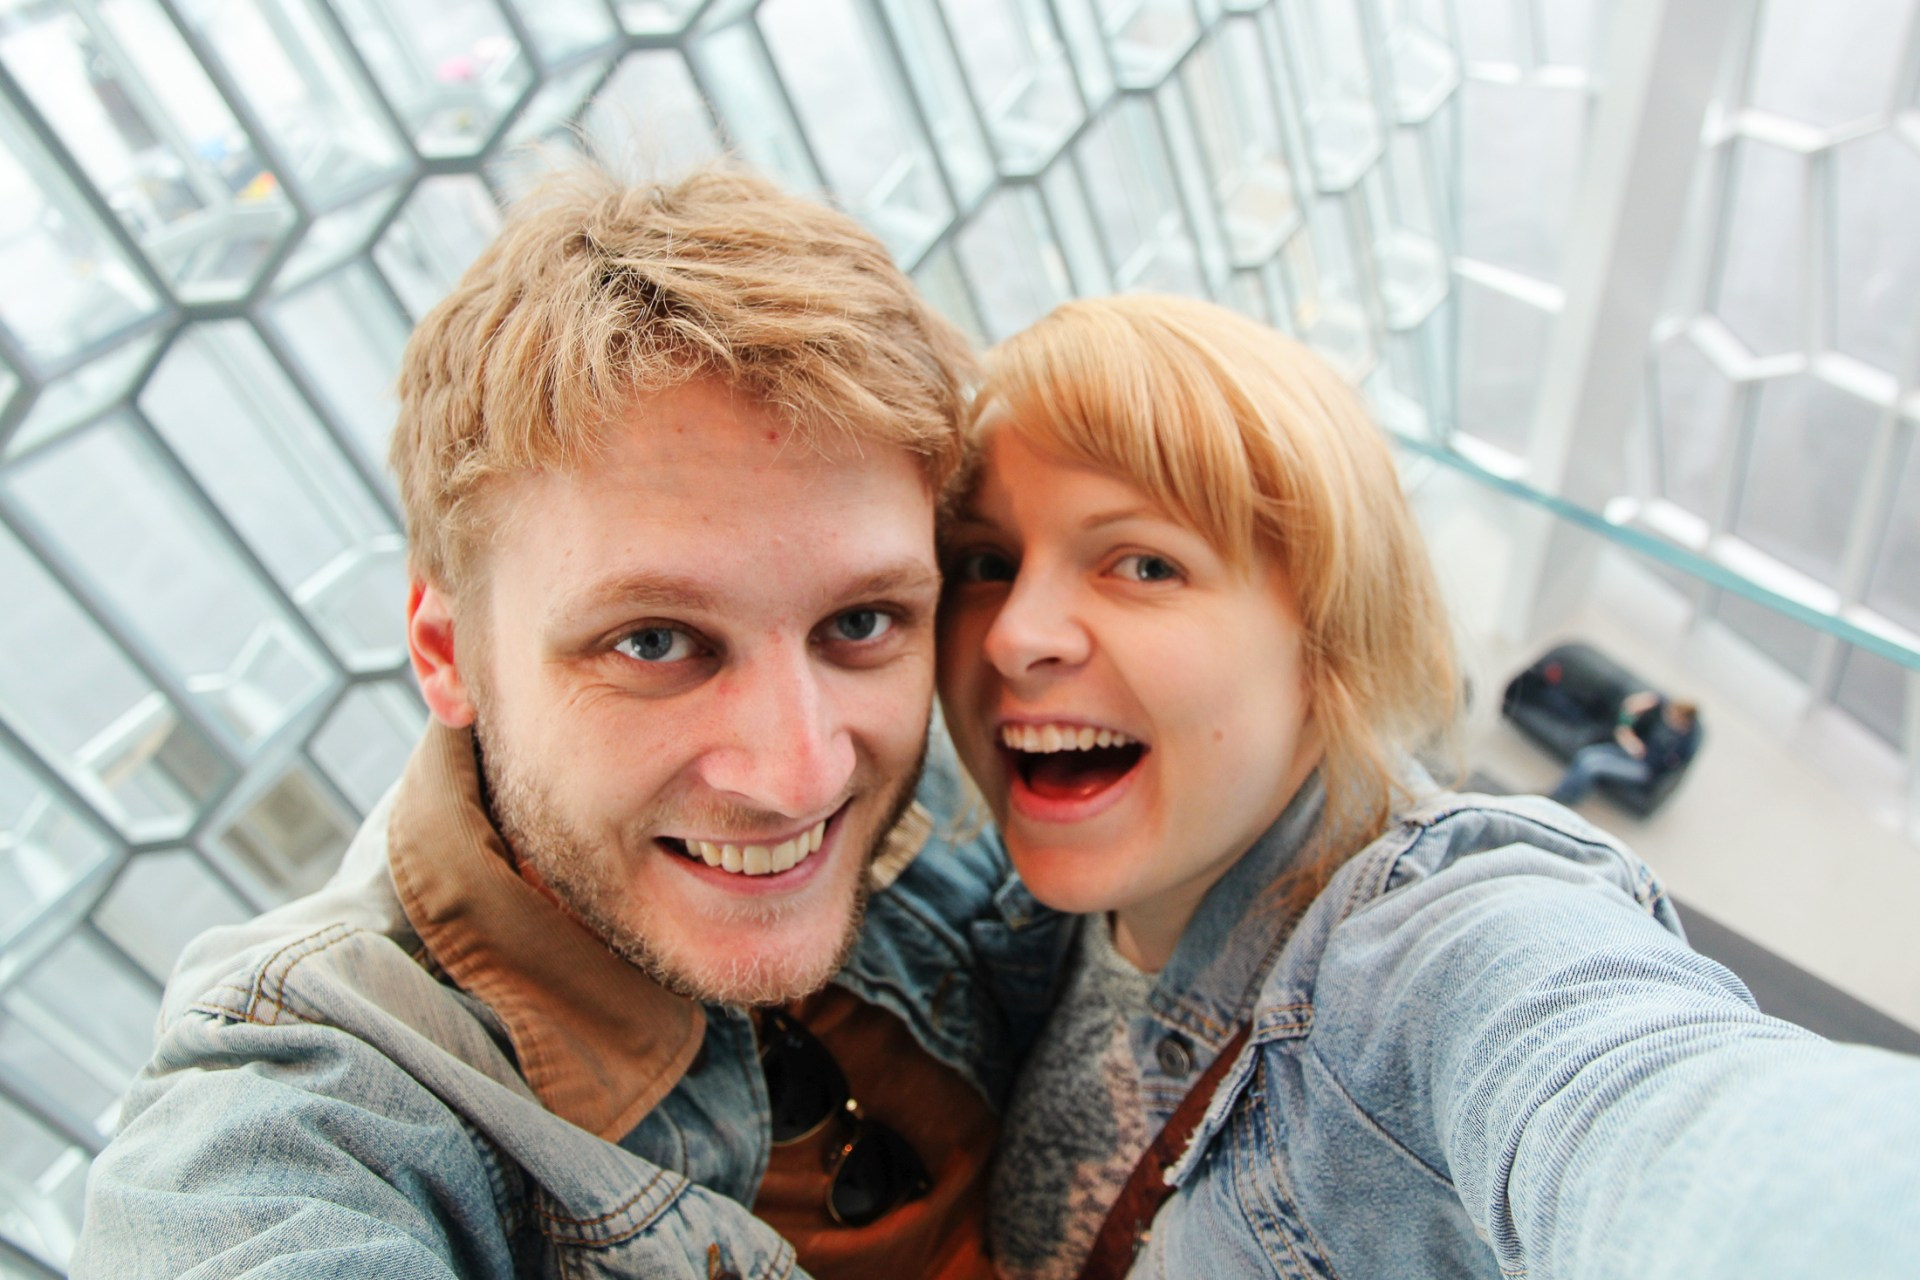 A sort of soppy travel love story